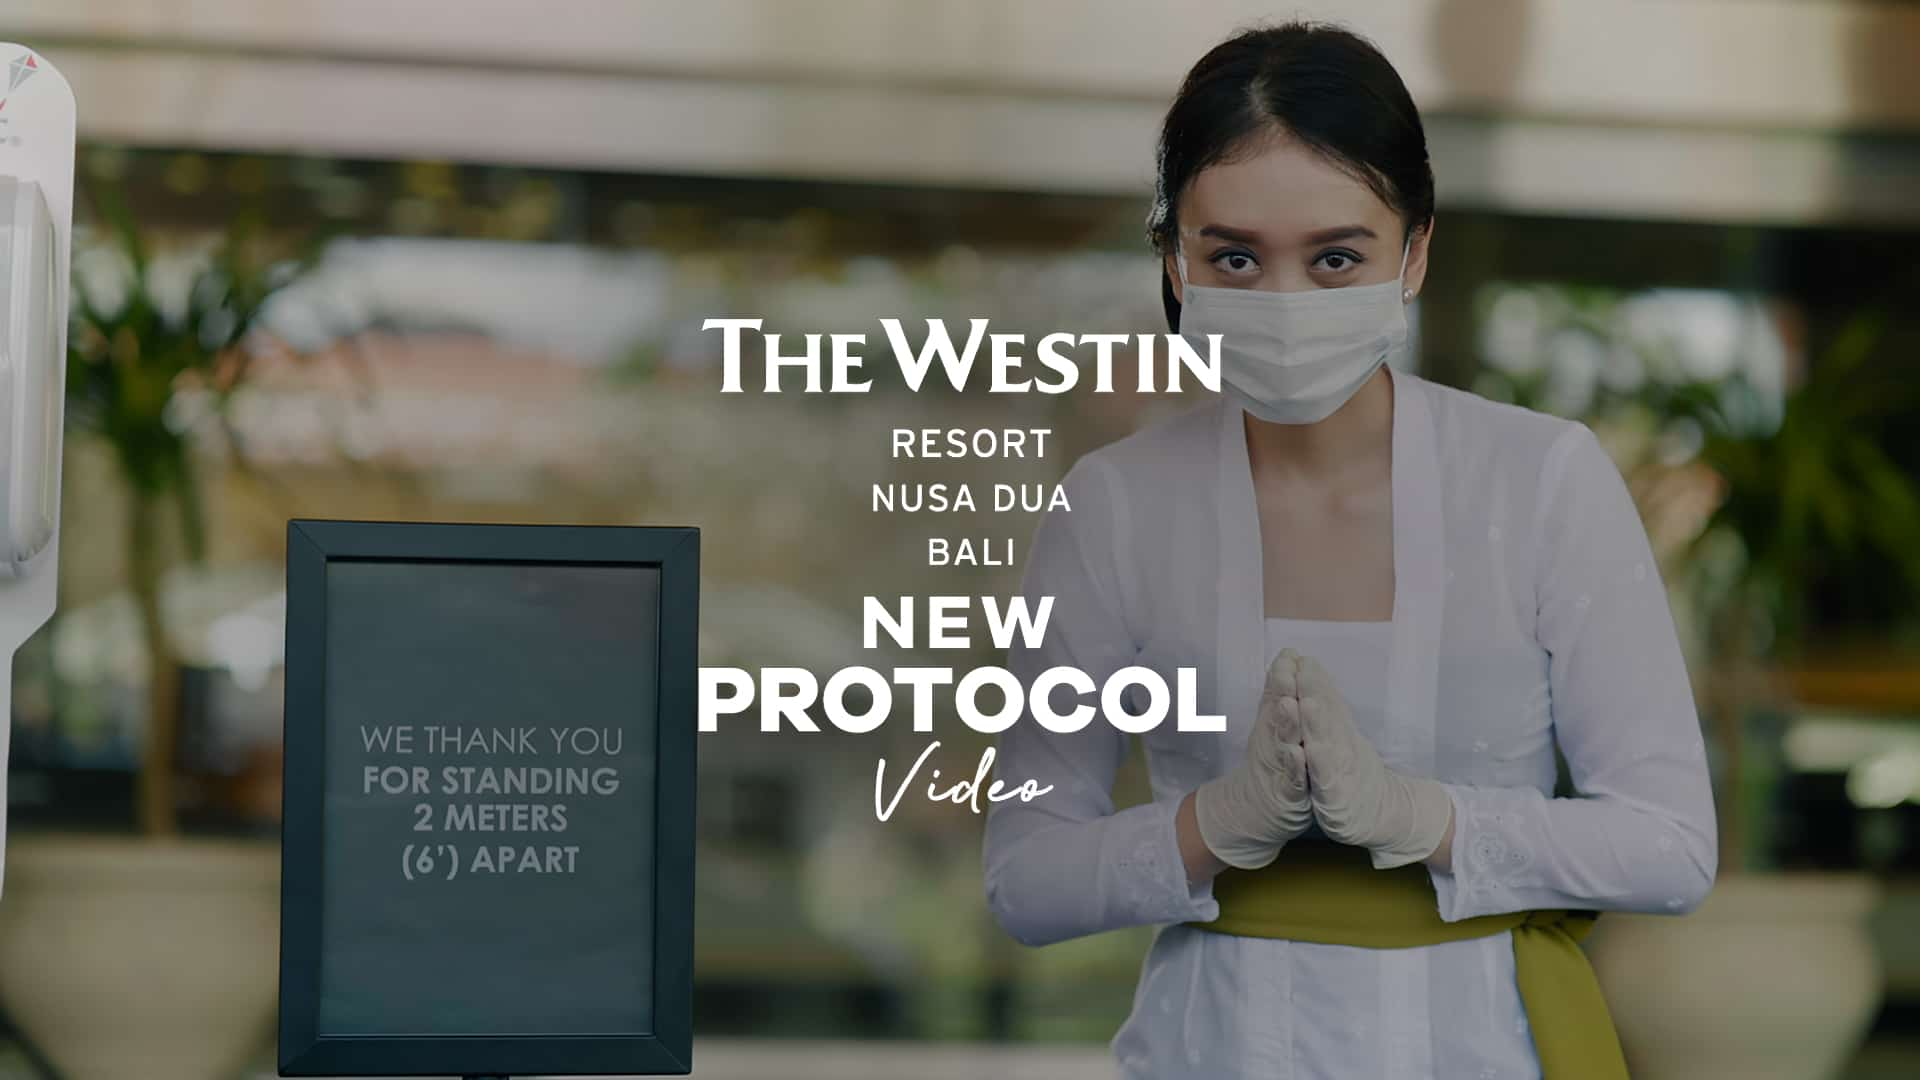 The Westin new protocol video